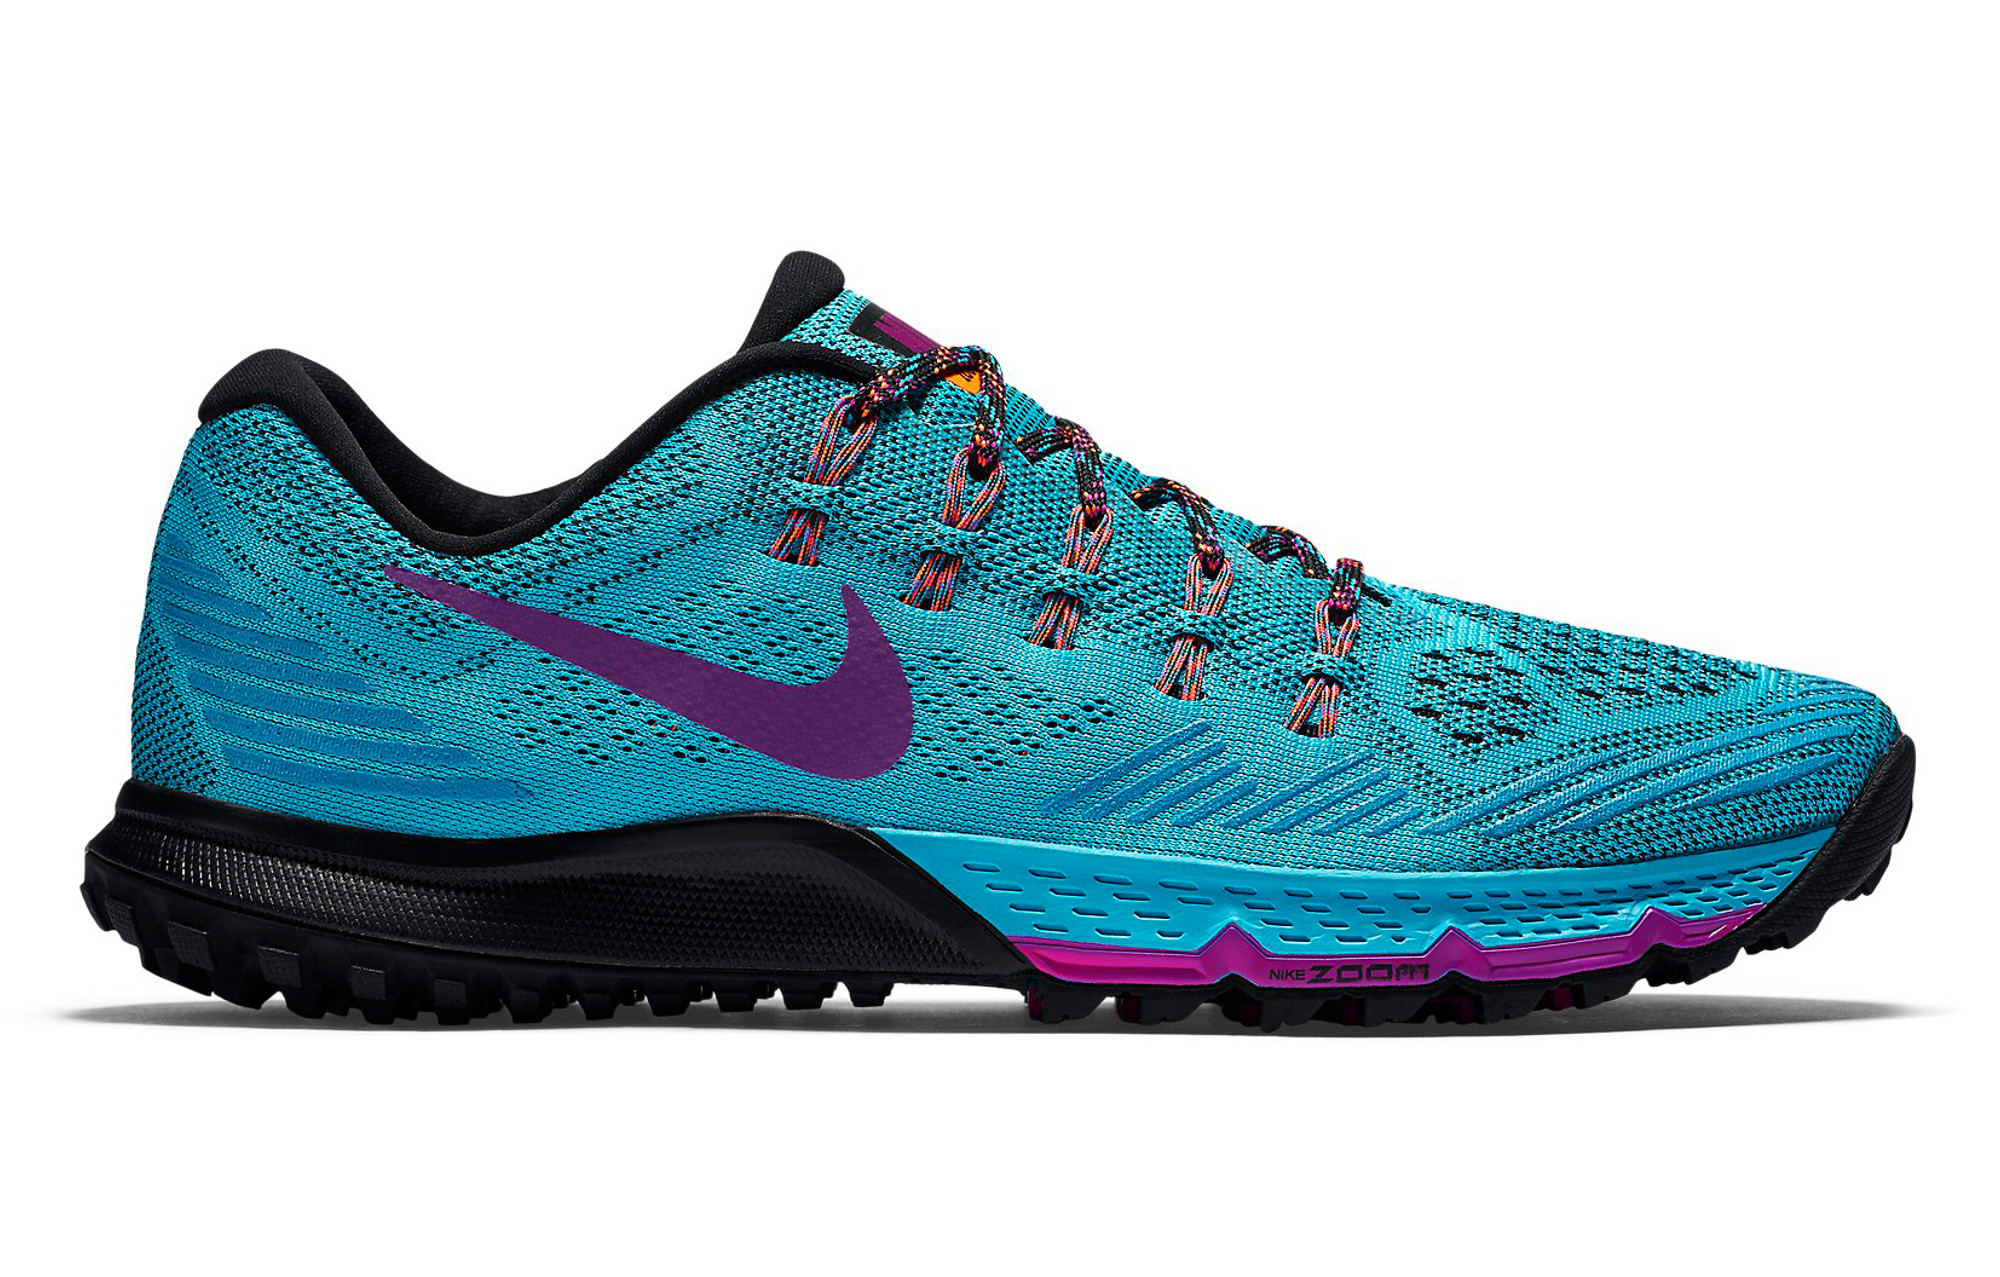 NIKE Shoes ZOOM TERRA Kiger 3 Blue Purple Women